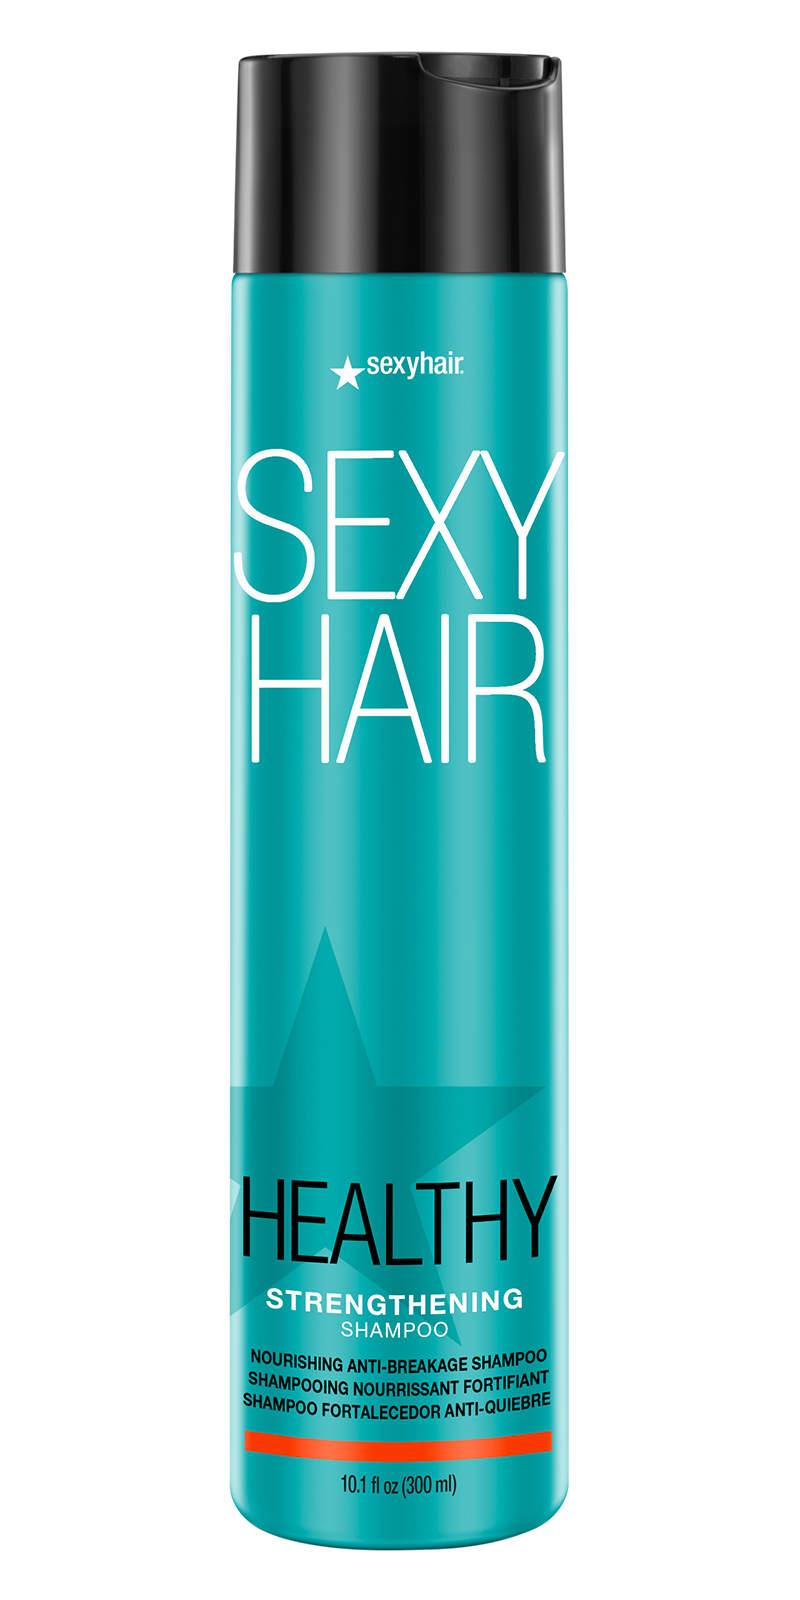 Featured Image for Product Strengthening Shampoo